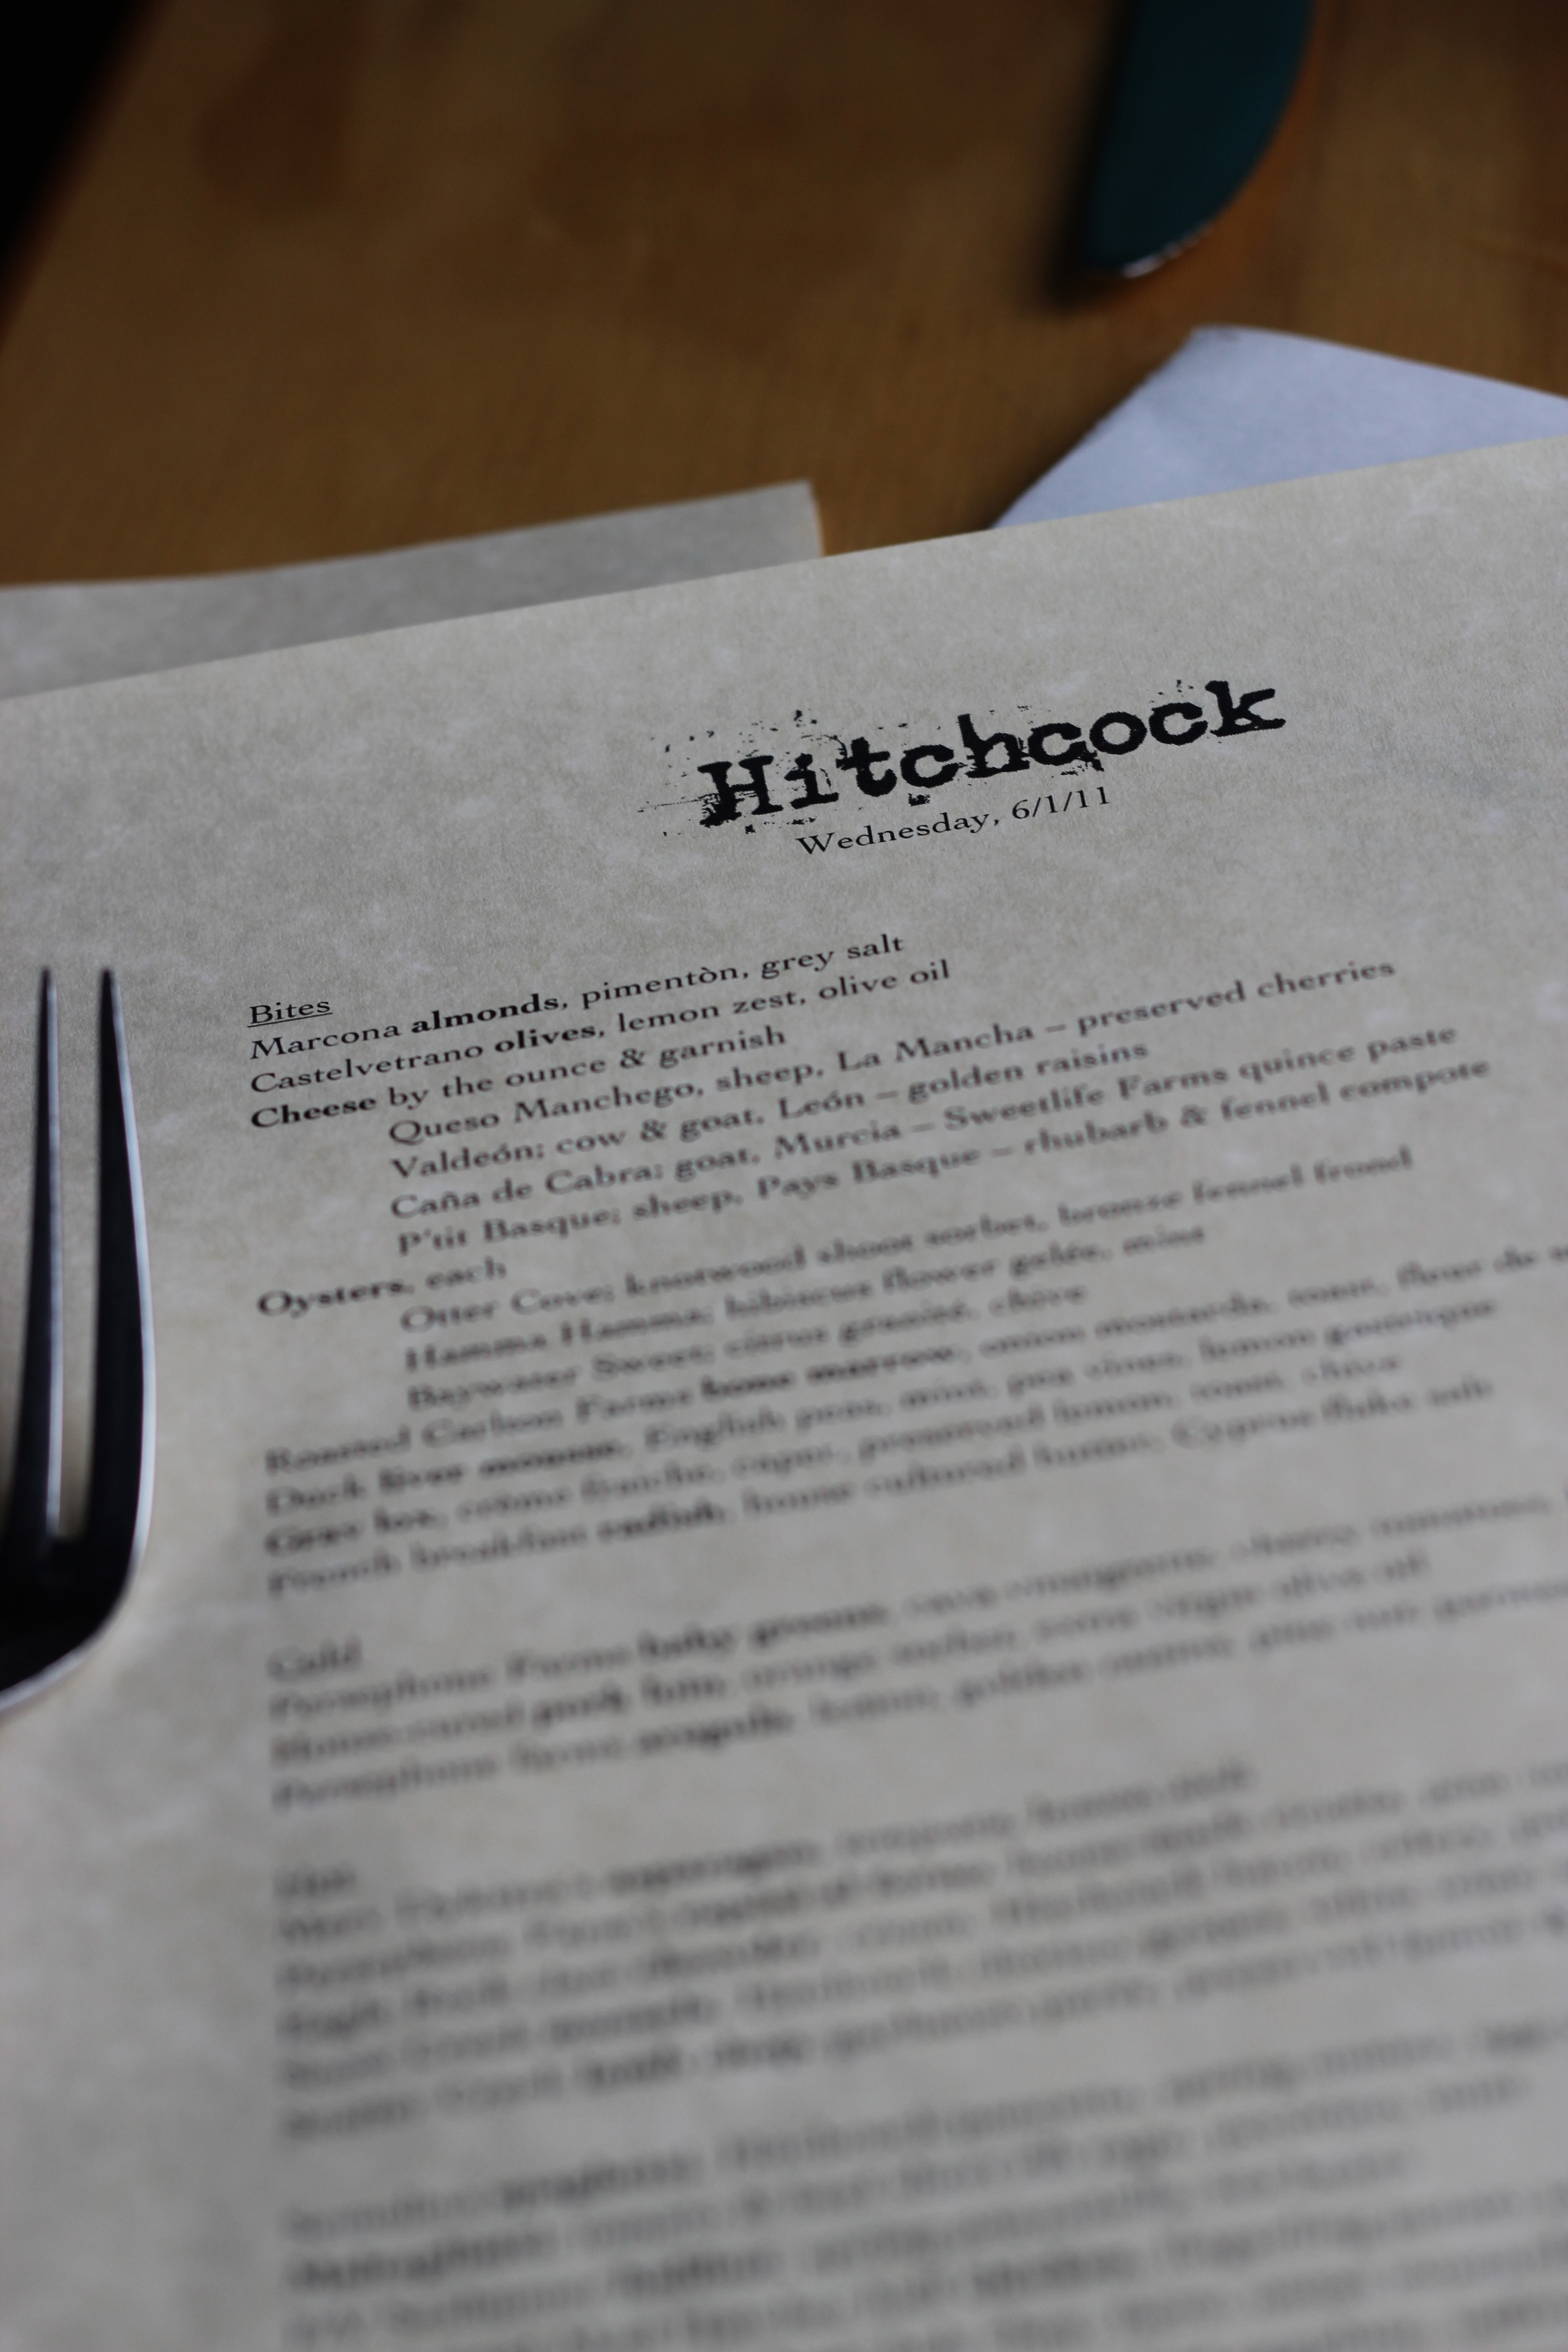 Wordless Wednesday: Hitchcock Restaurant on Bainbridge Island